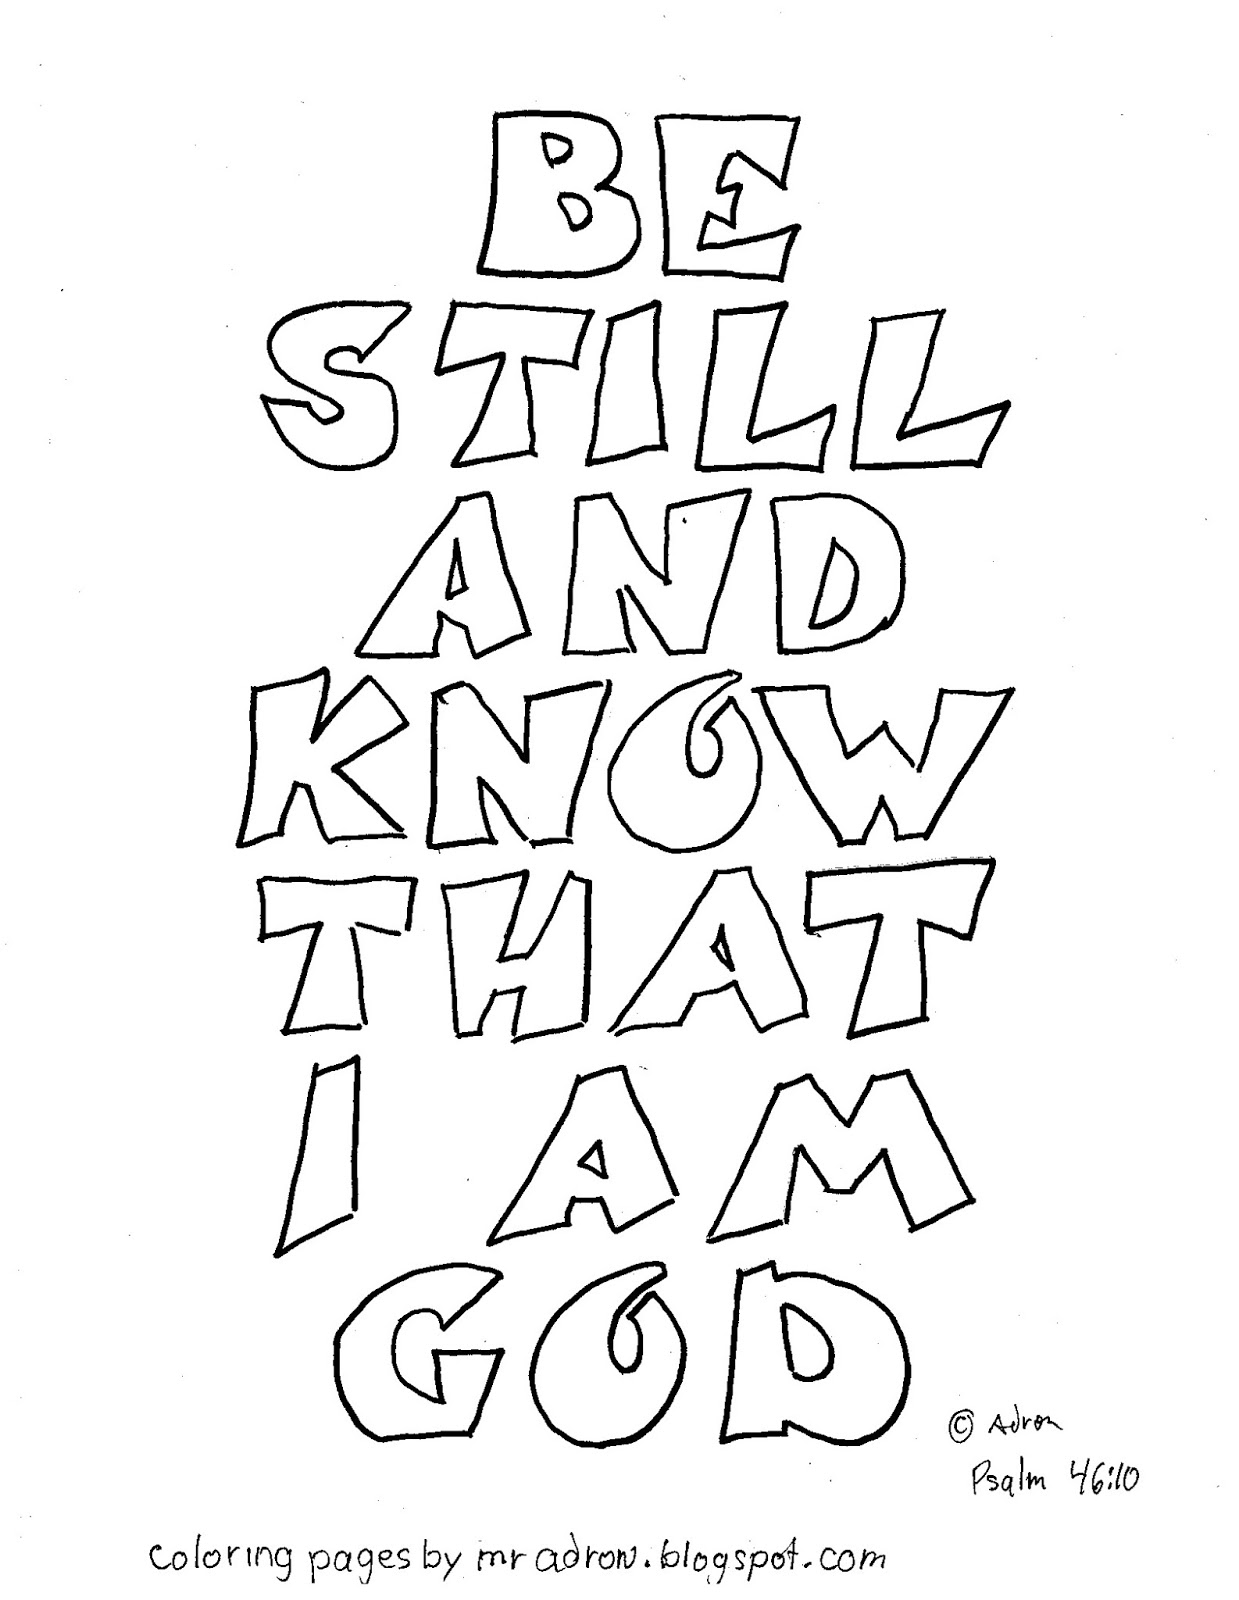 Coloring pages god ~ Coloring Pages for Kids by Mr. Adron: Psalm 46:10 Coloring ...